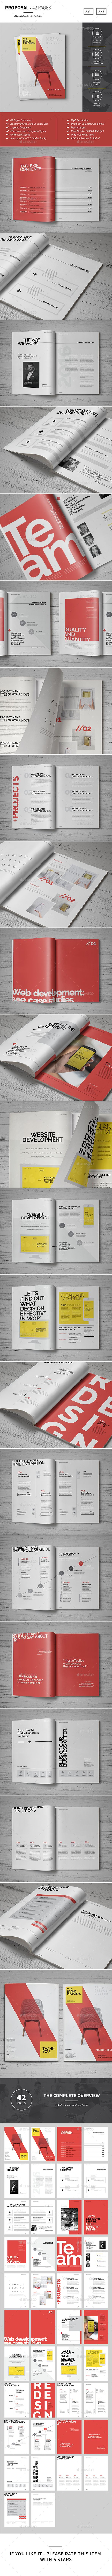 Proposal by BeCreative Proposal Template Proposal template